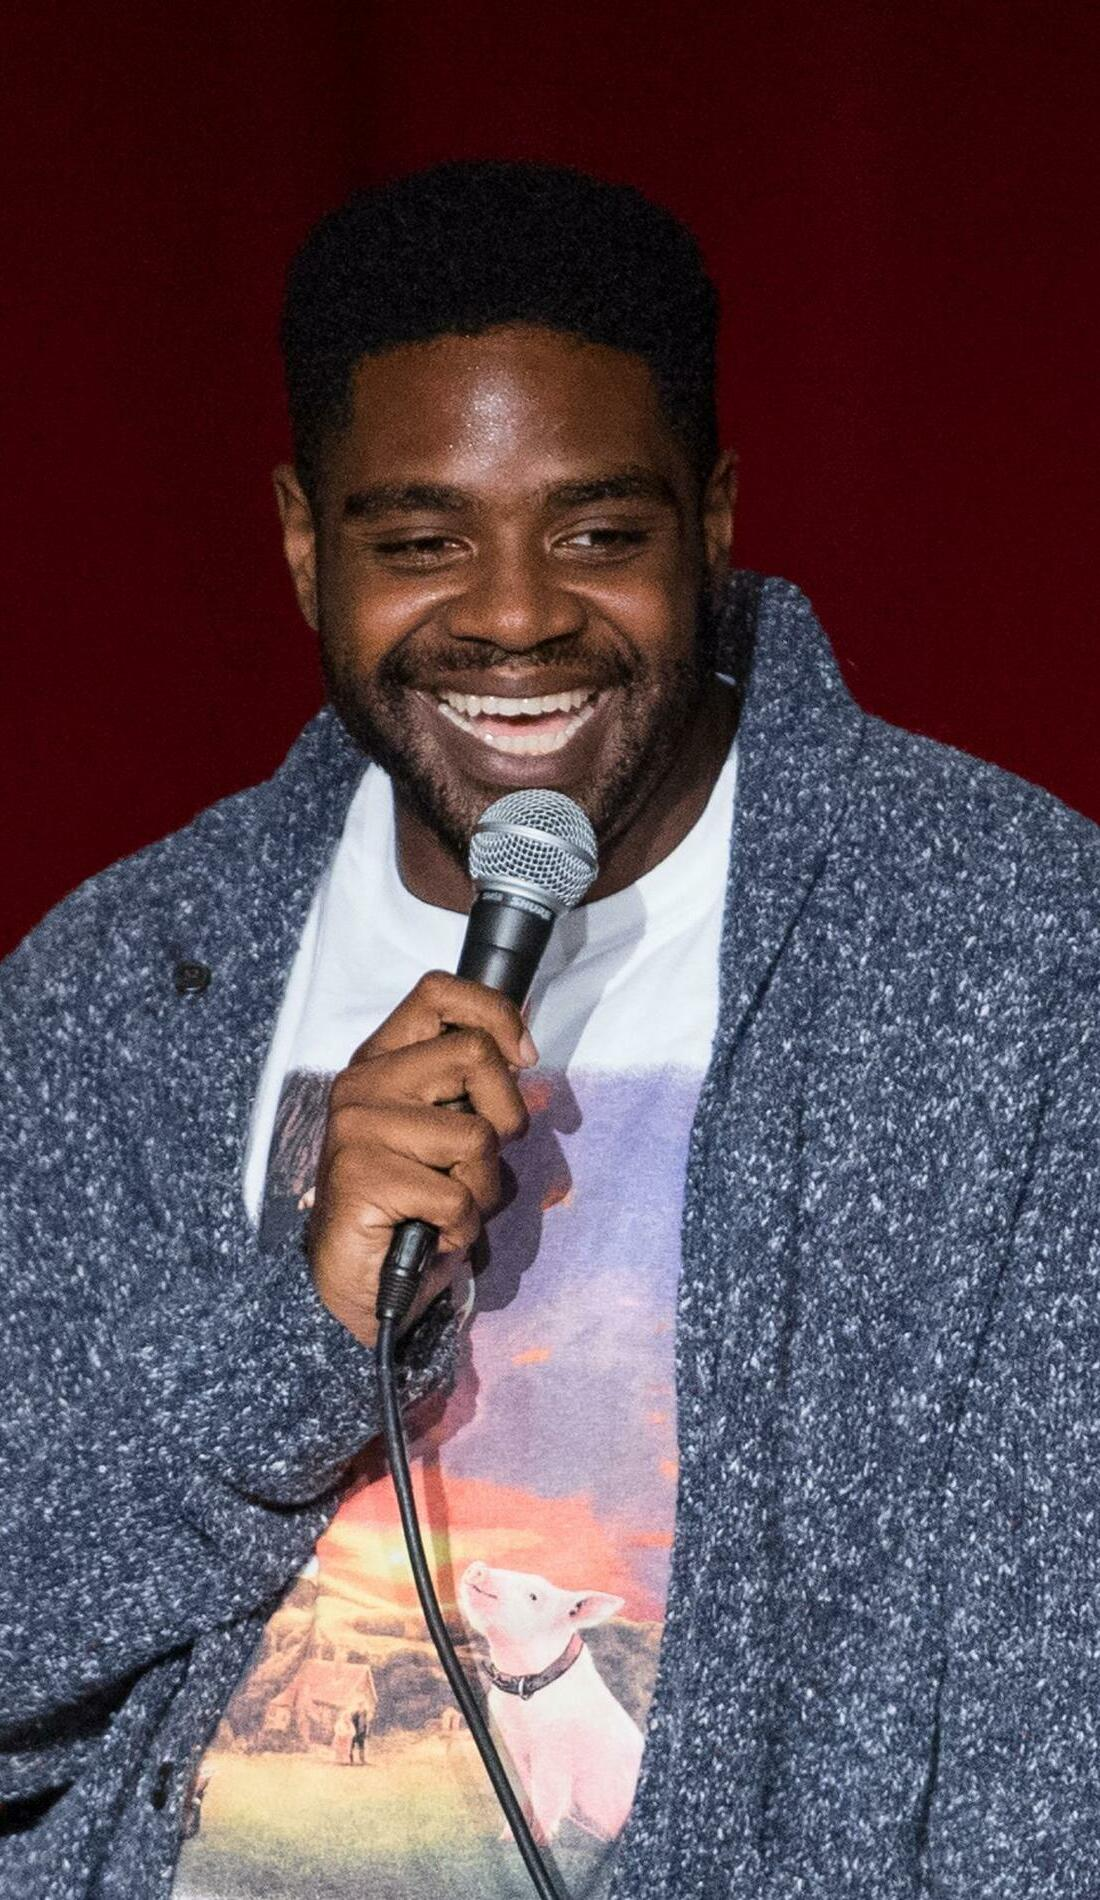 A Ron Funches live event